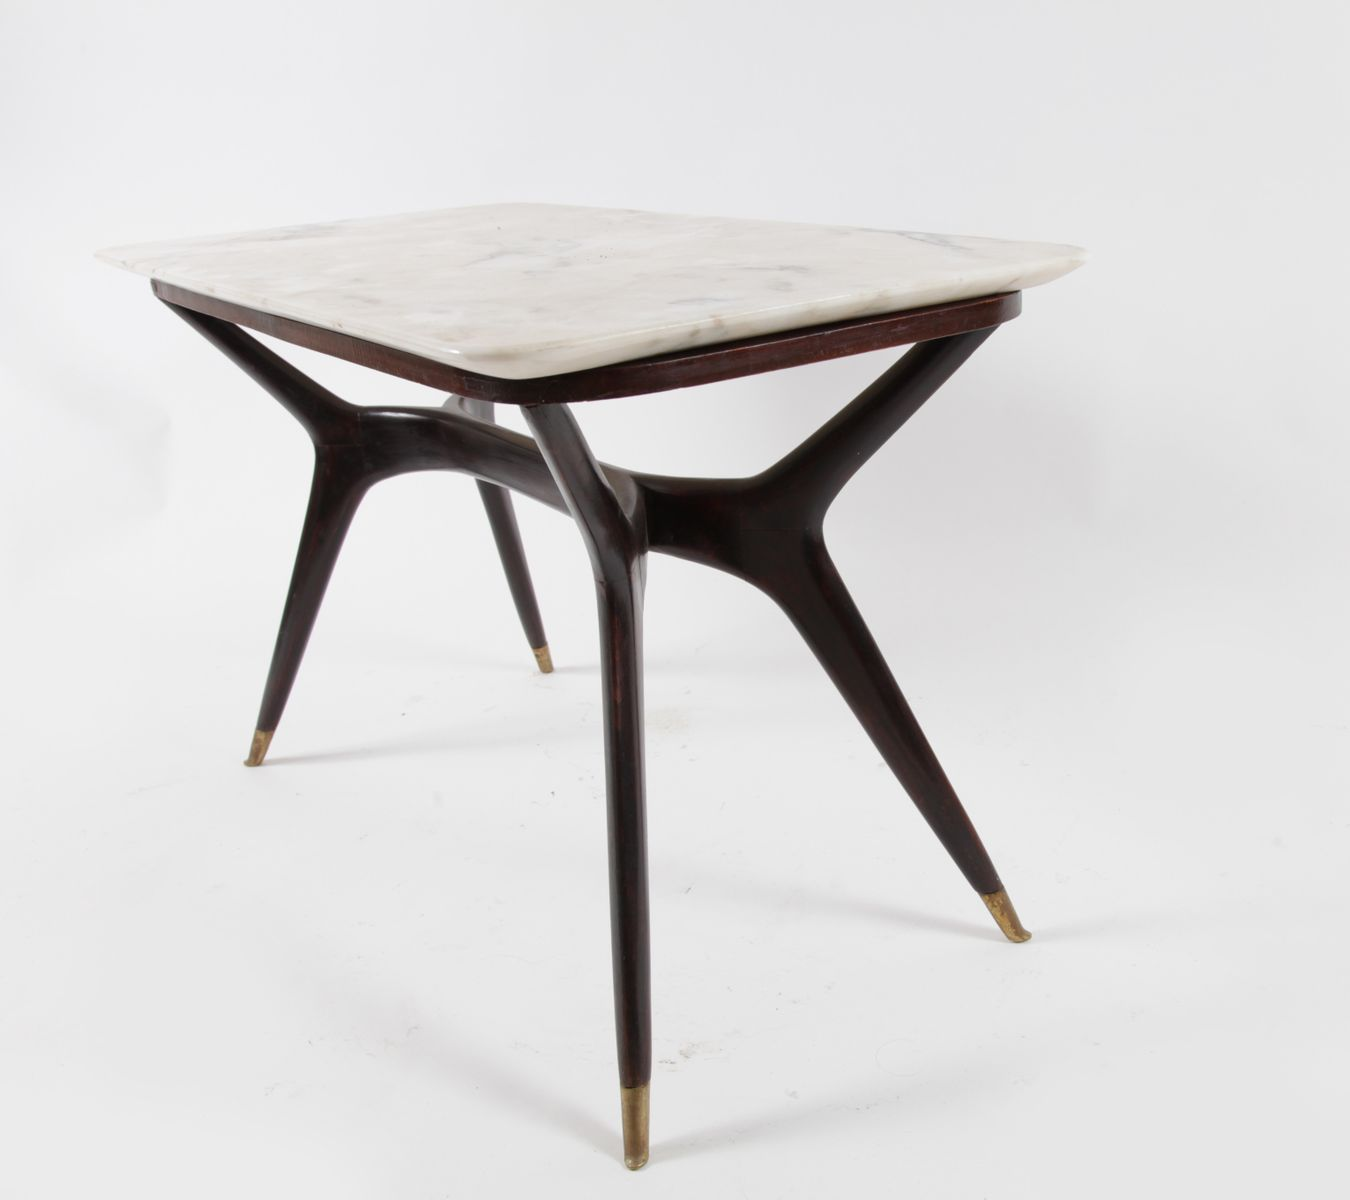 Italian Marble Coffee Table Italian Marble Coffee Table By Ico Parisi 1950s For Sale At Pamono